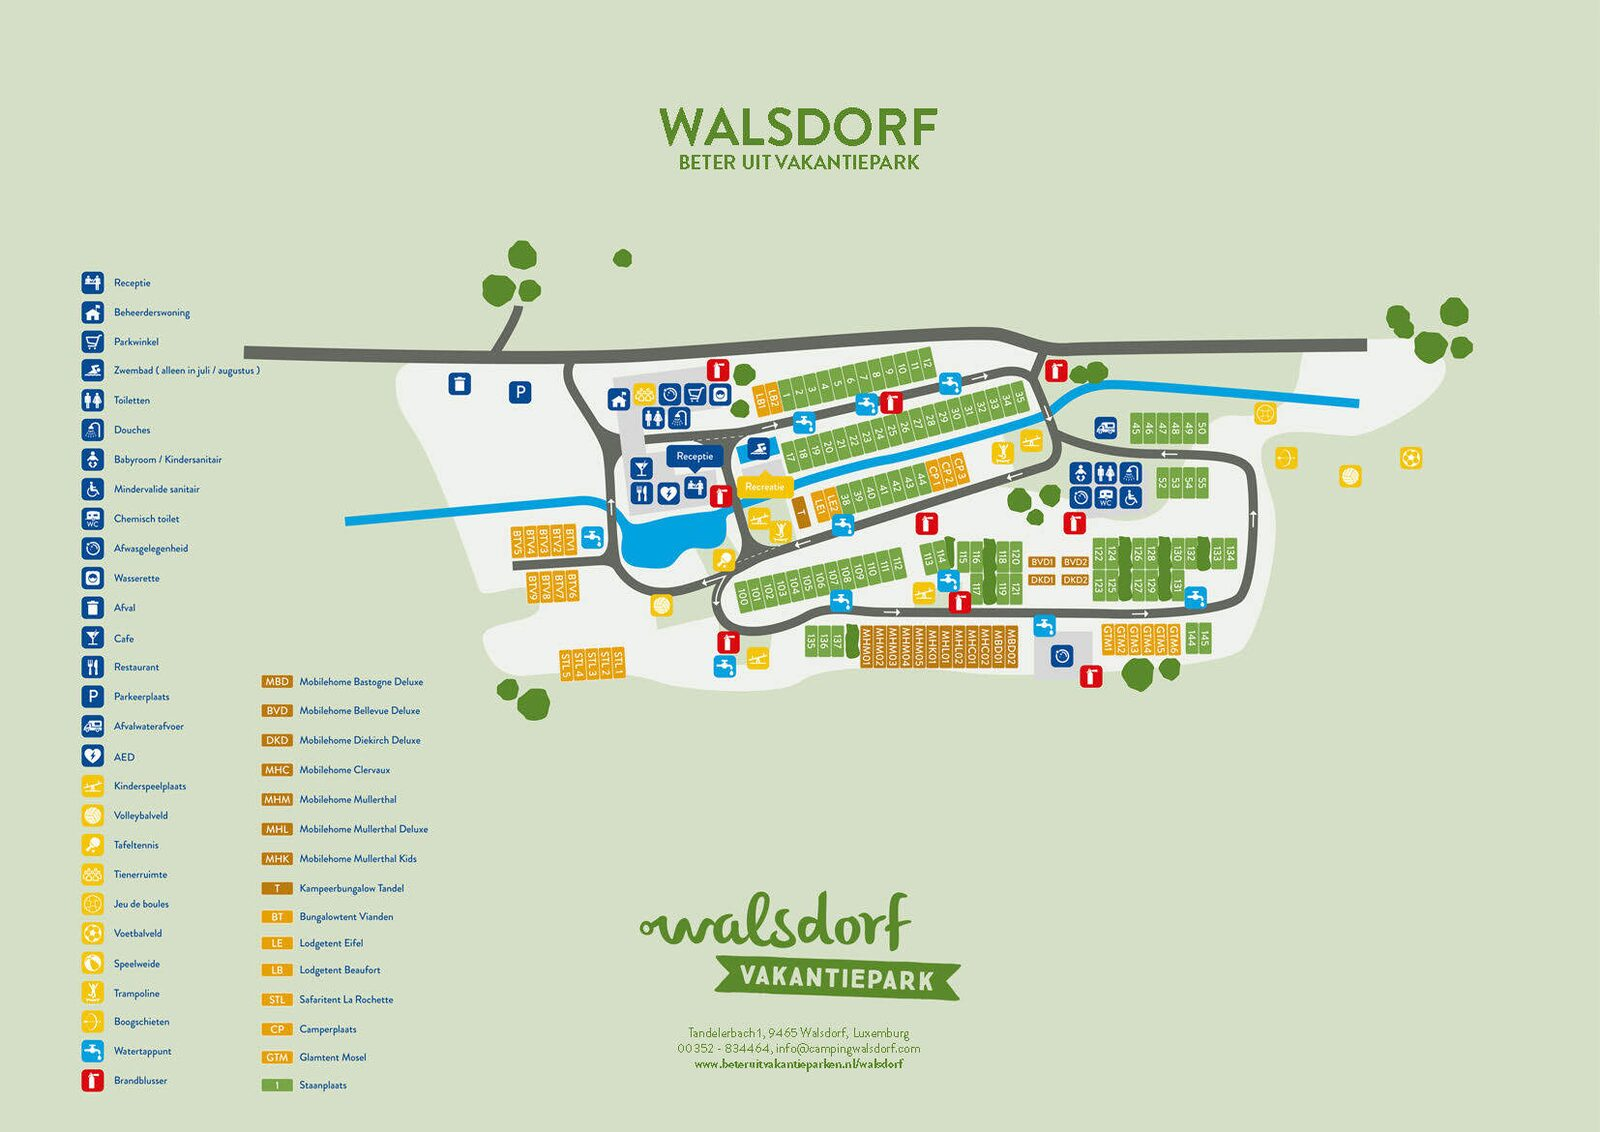 Map of Walsdorf